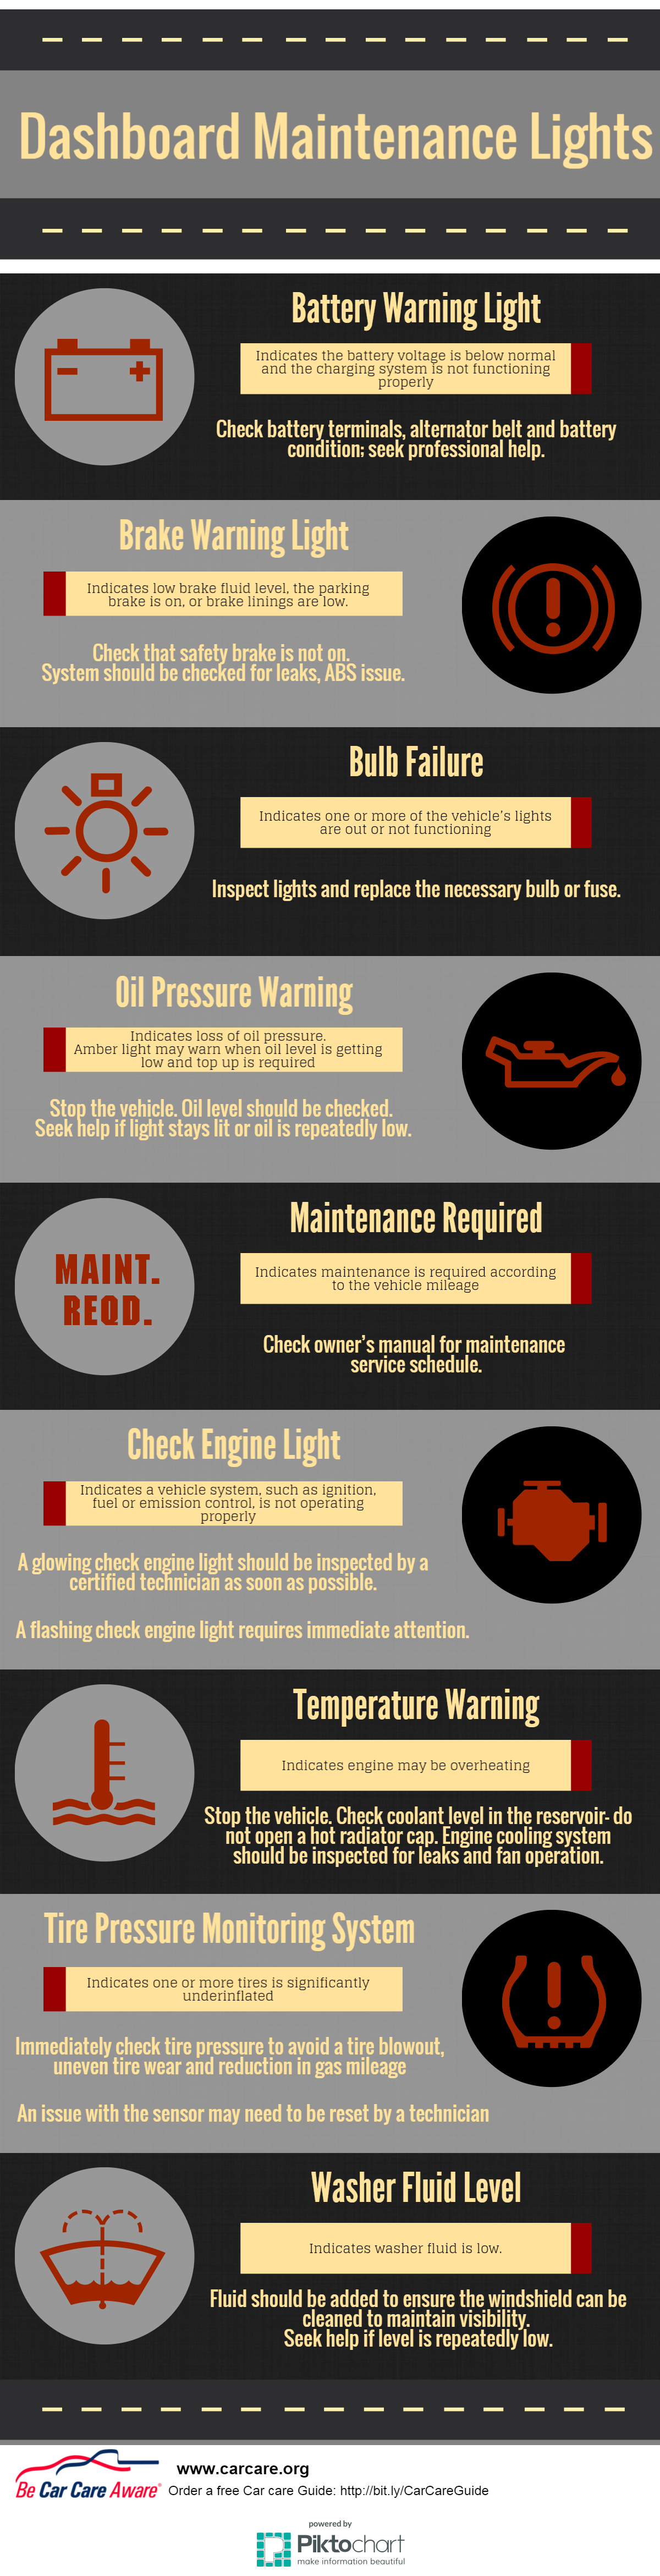 Boston_Auto_Repair_Check_Engine_Light